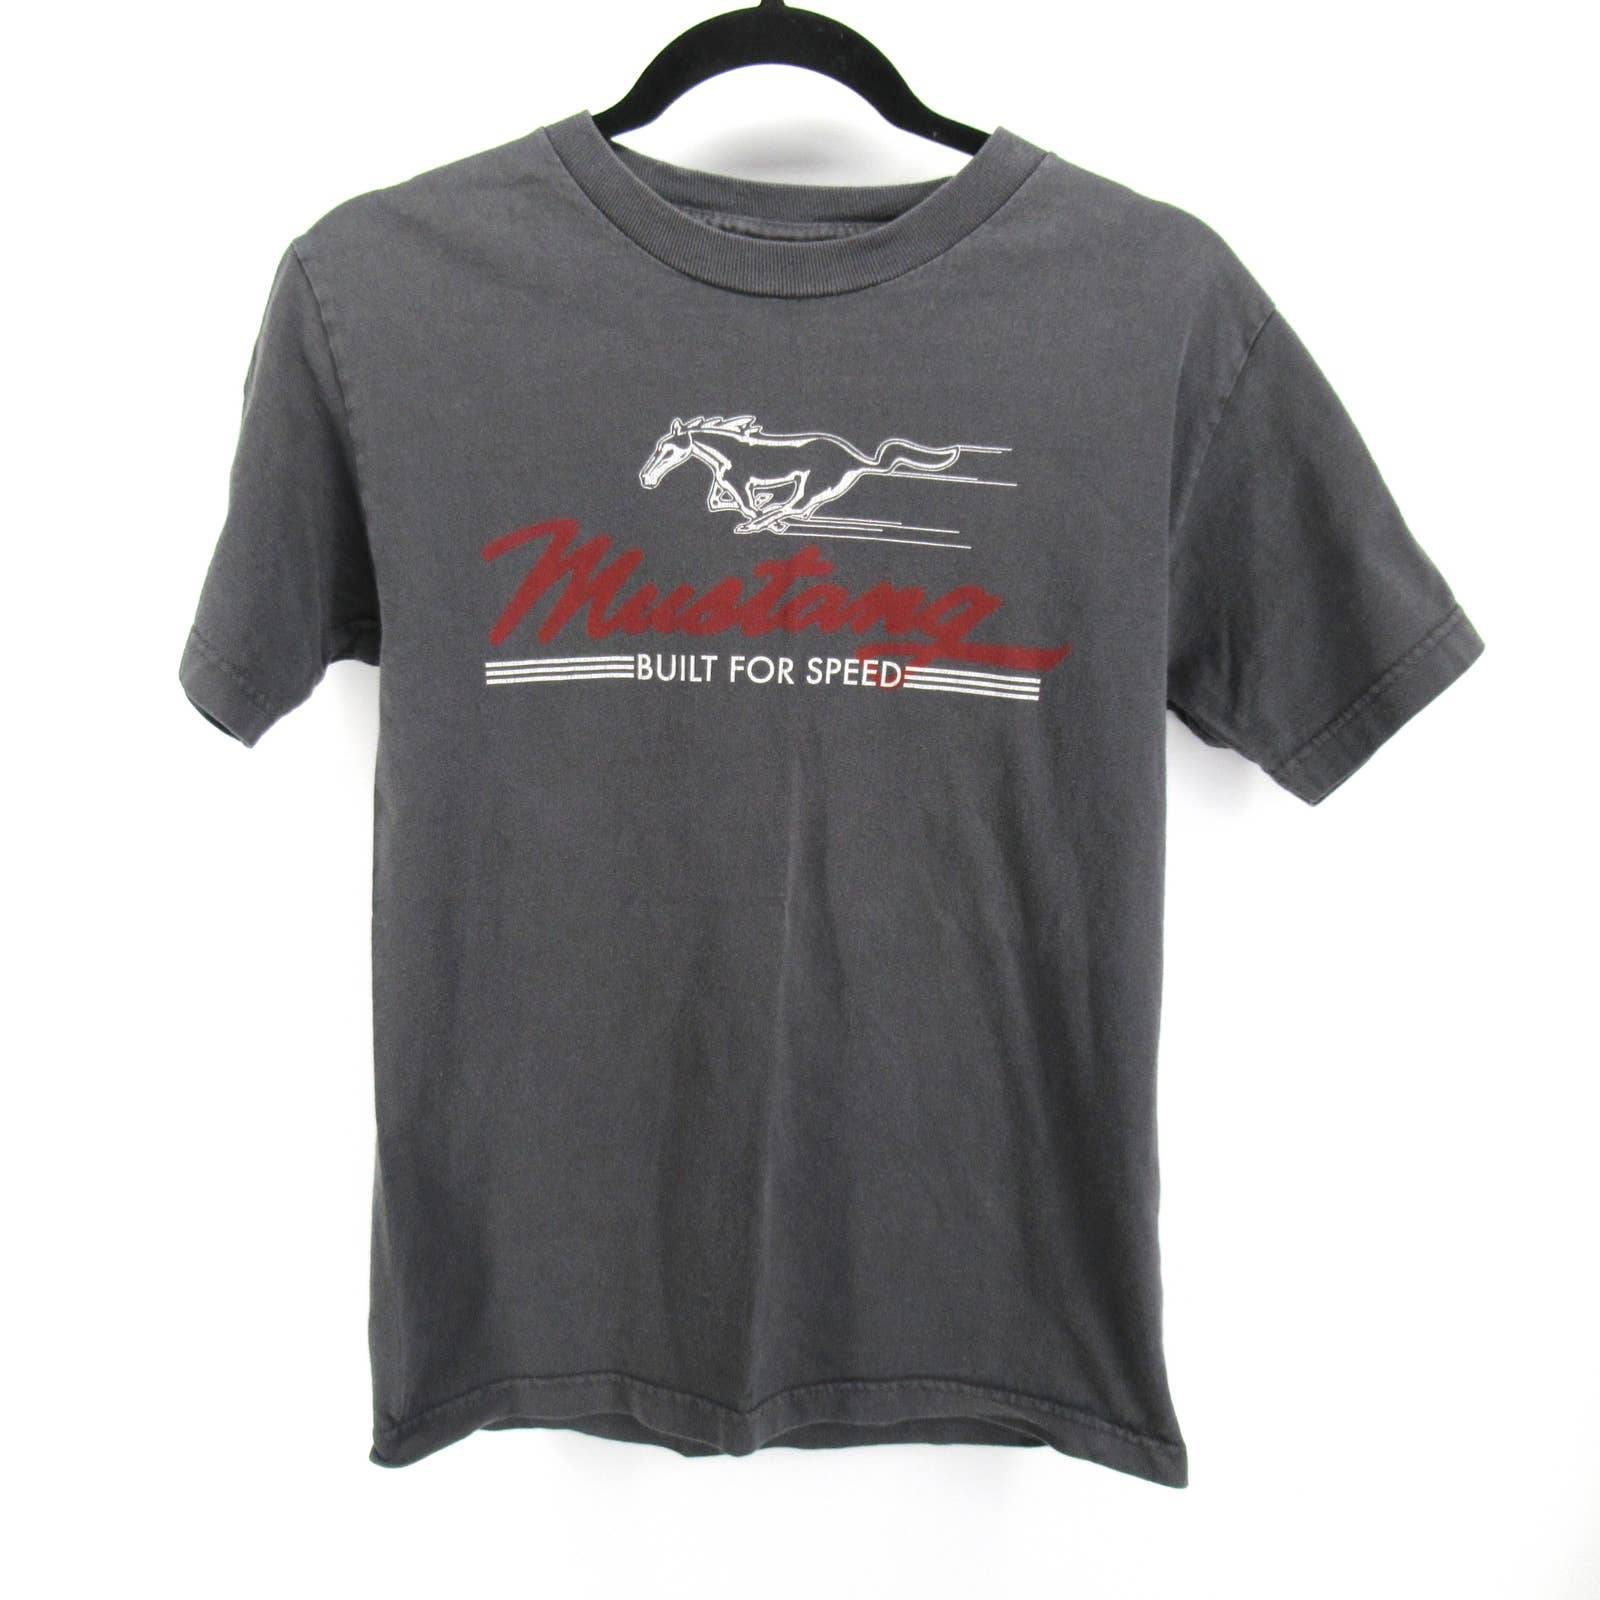 Vintage Ford Mustang Speed T Shirt Tee